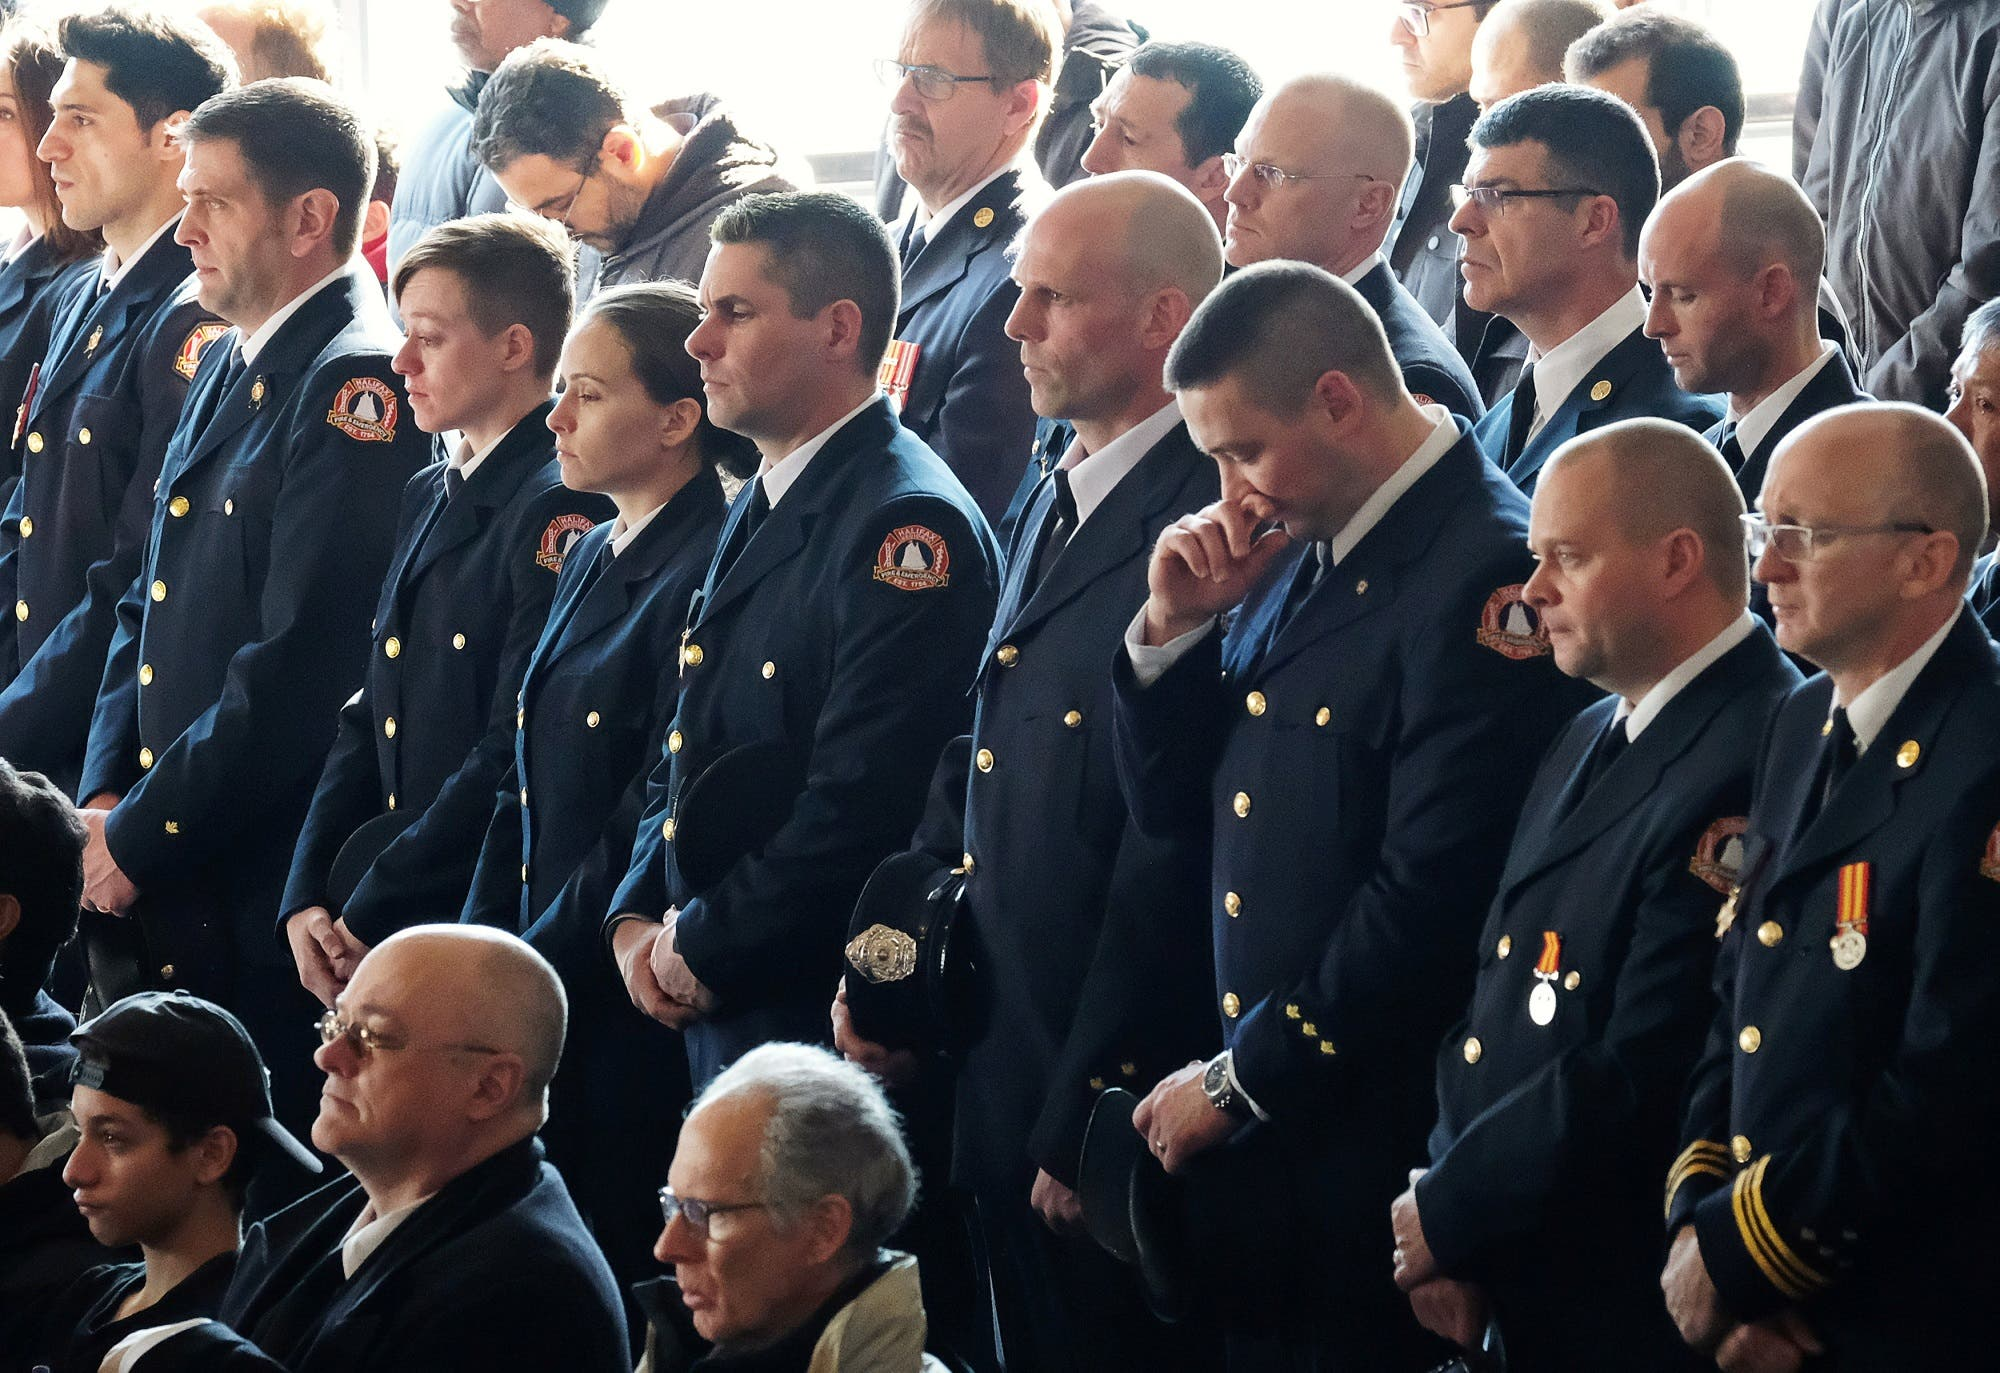 Halifax firefighters listen during the funeral service for a Syrian refugee family who lost seven children in a fire. (Reuters)